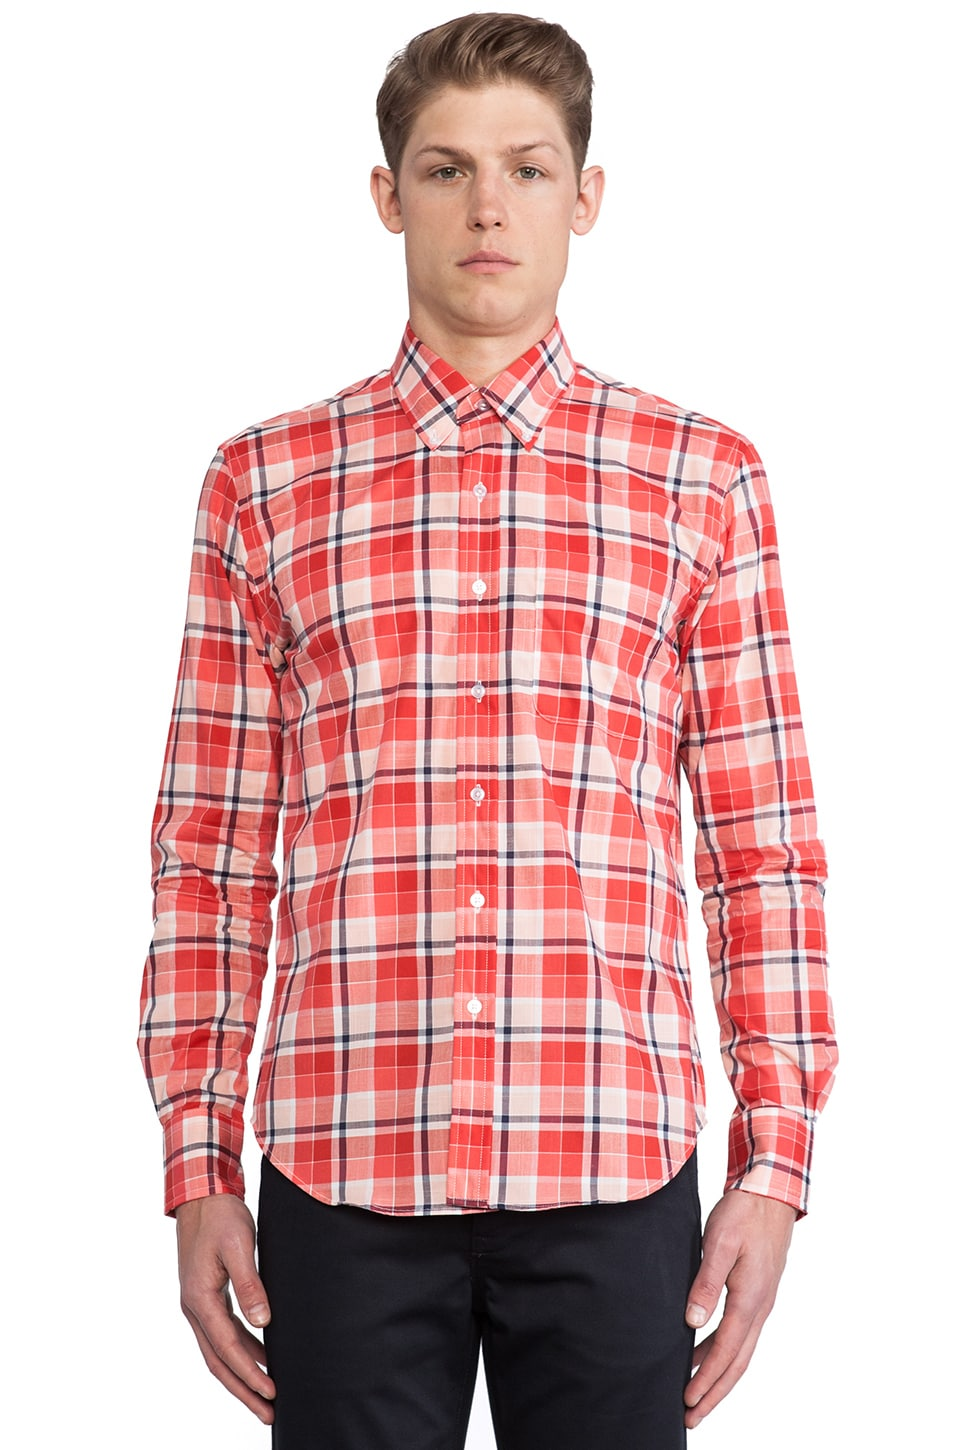 United Stock Dry Goods Plaid Button Down in Coral & Black